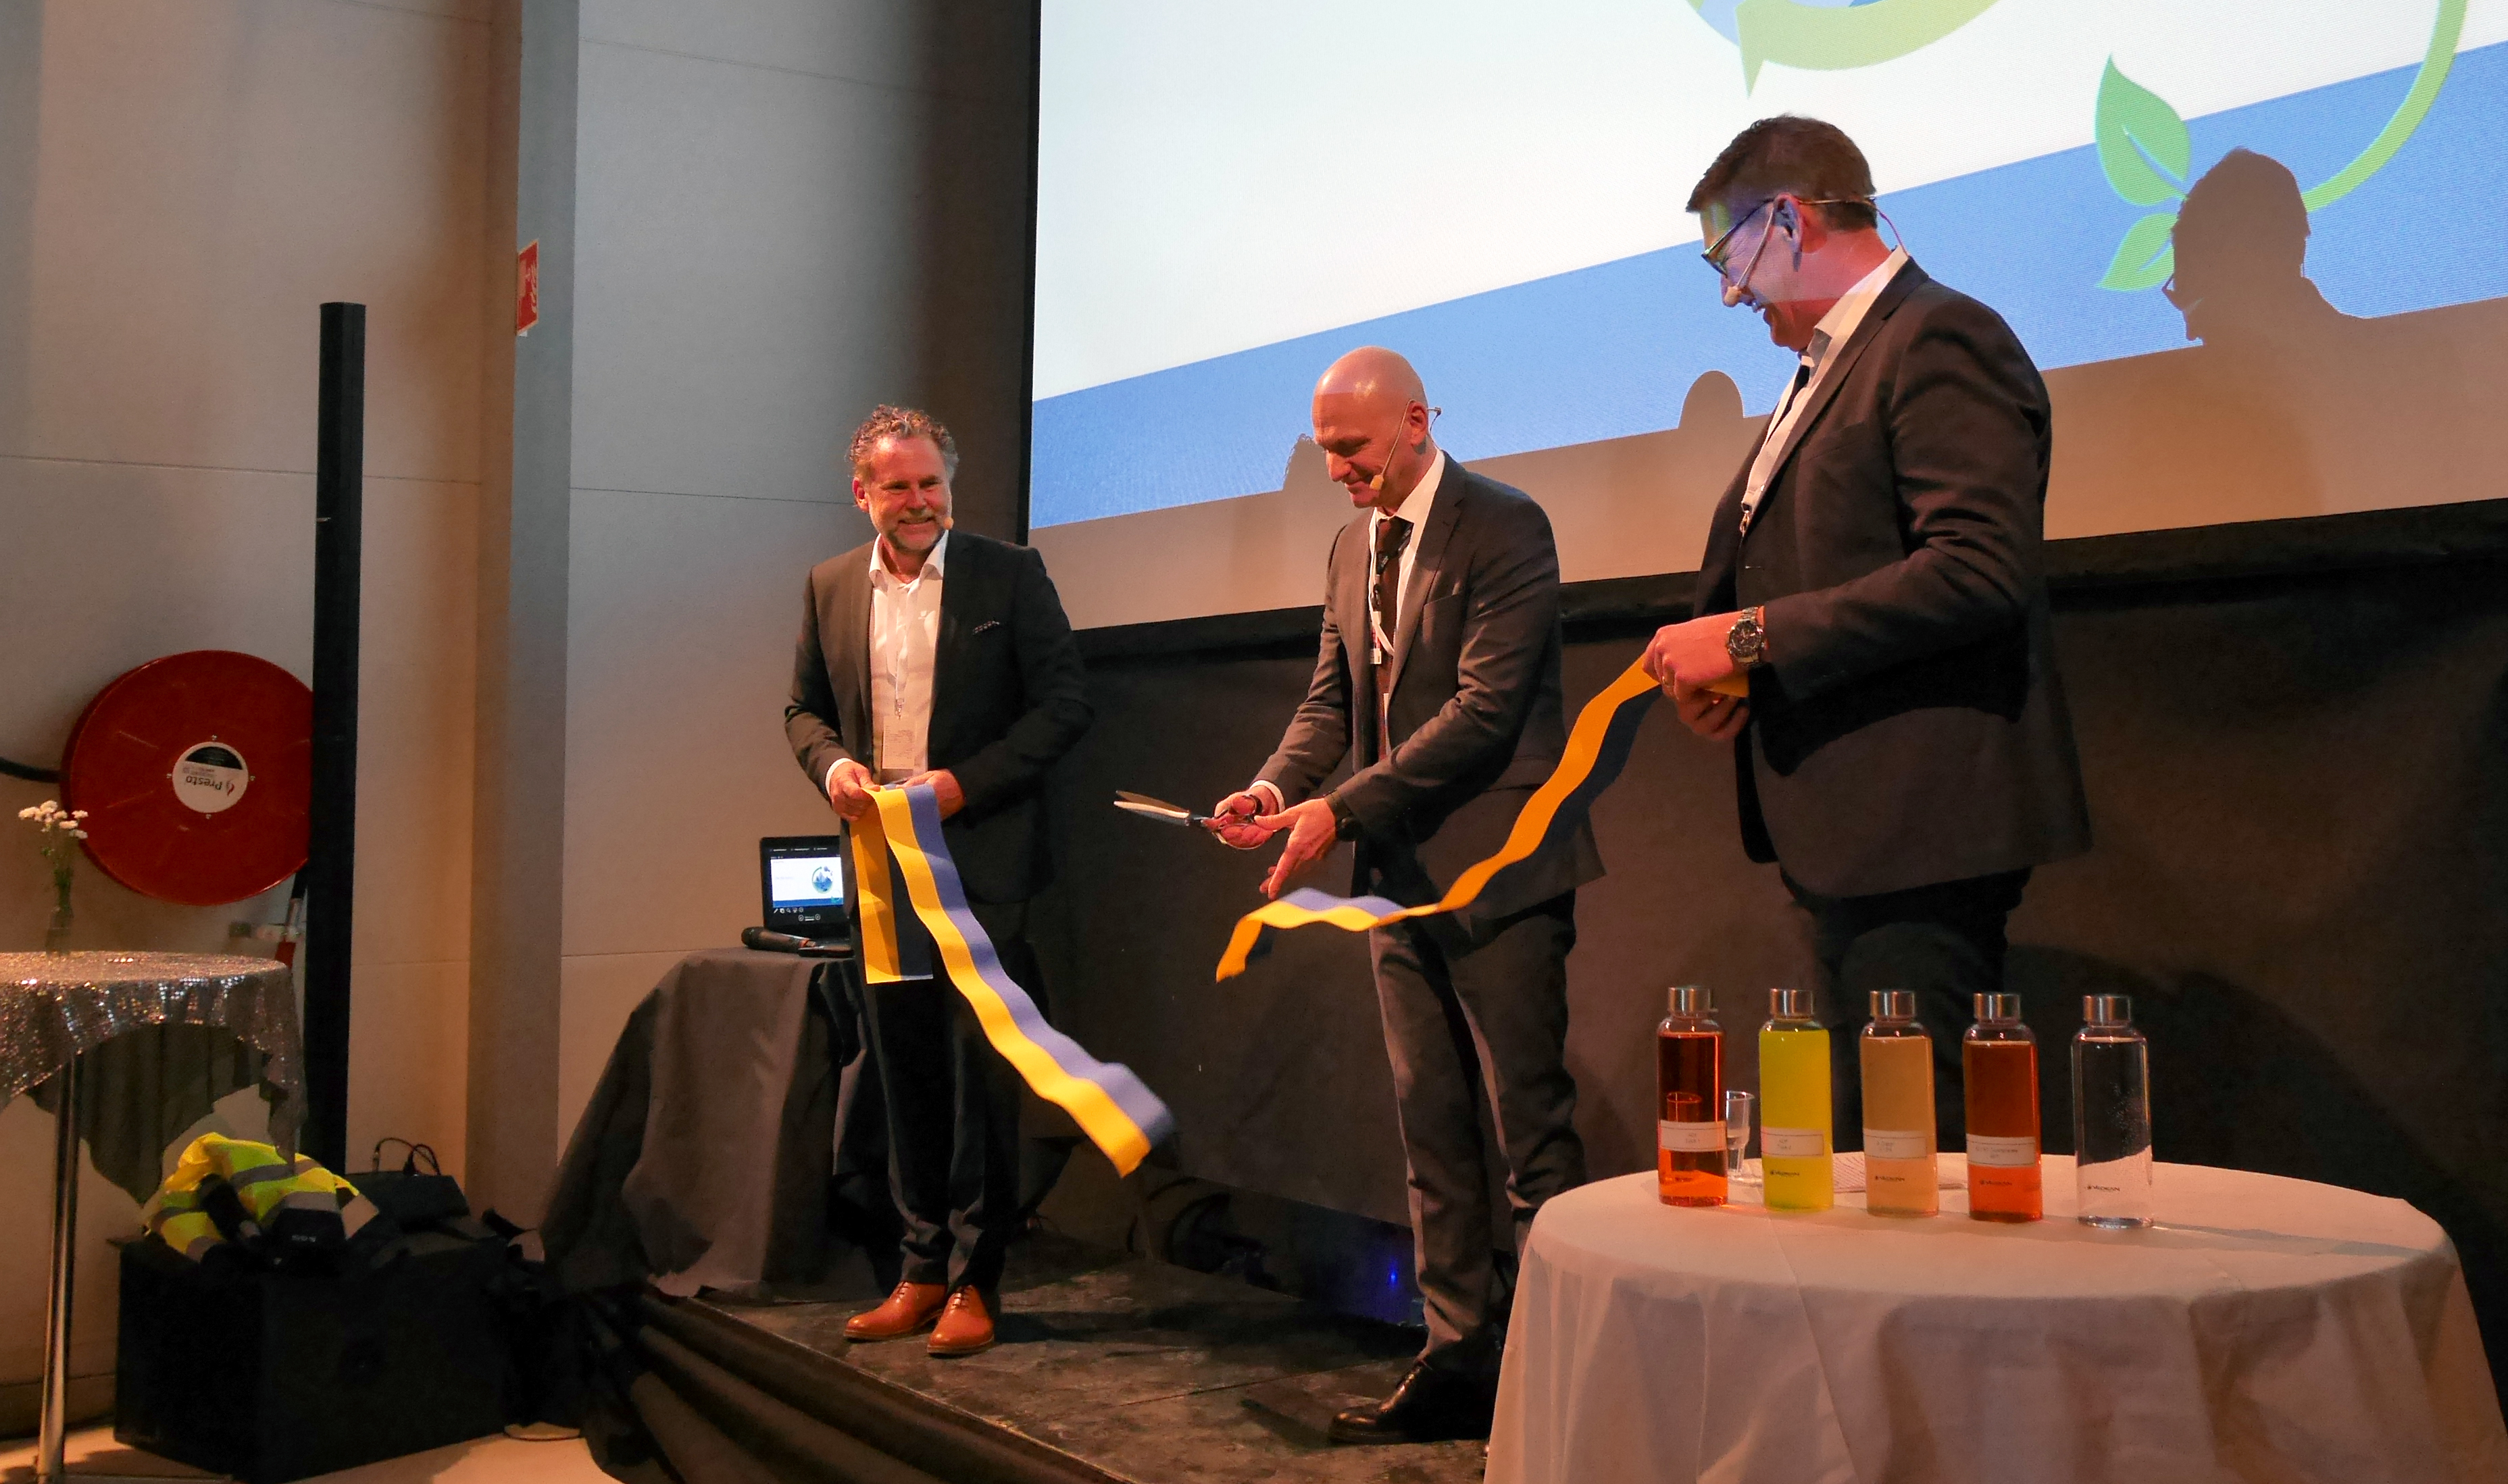 On Thursday 27 September it was finally time to cut the ribbon at the Arlanda facility!